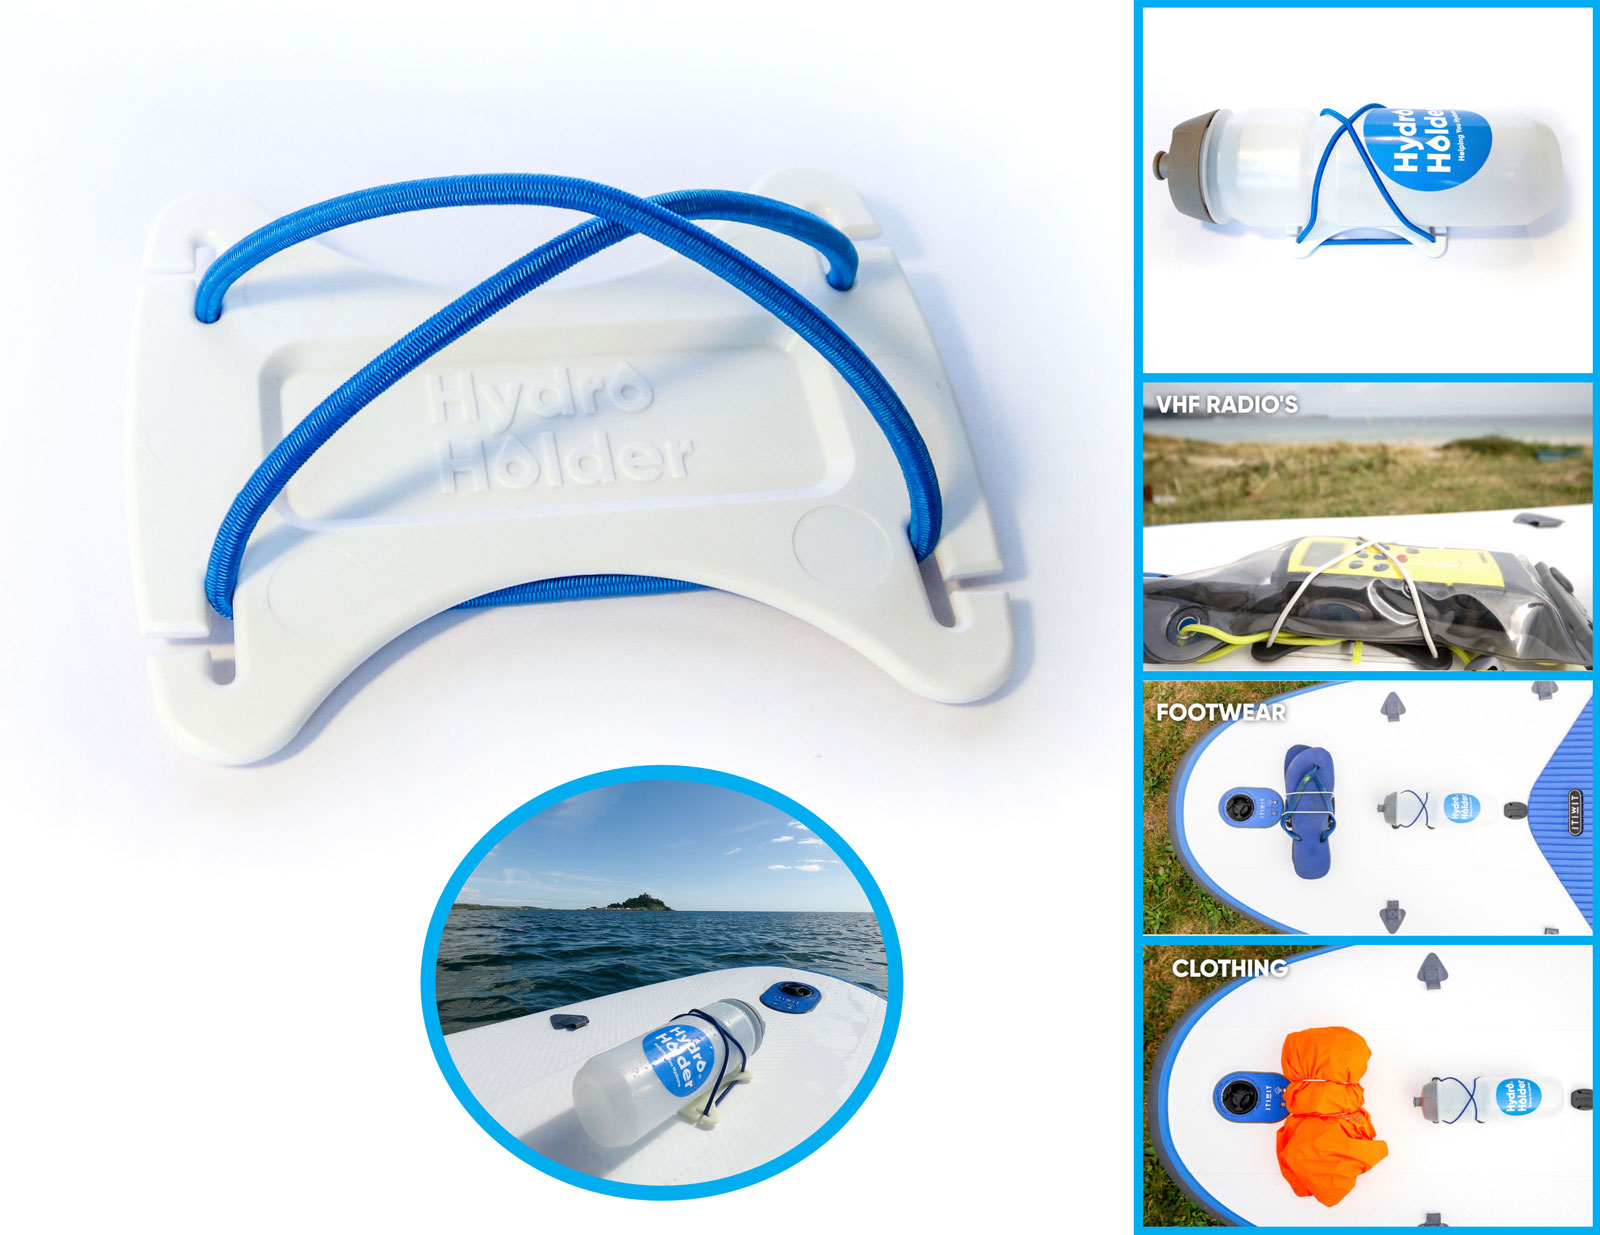 Hydro-Holder-main-image-Water-Bottle-Holder-SUP